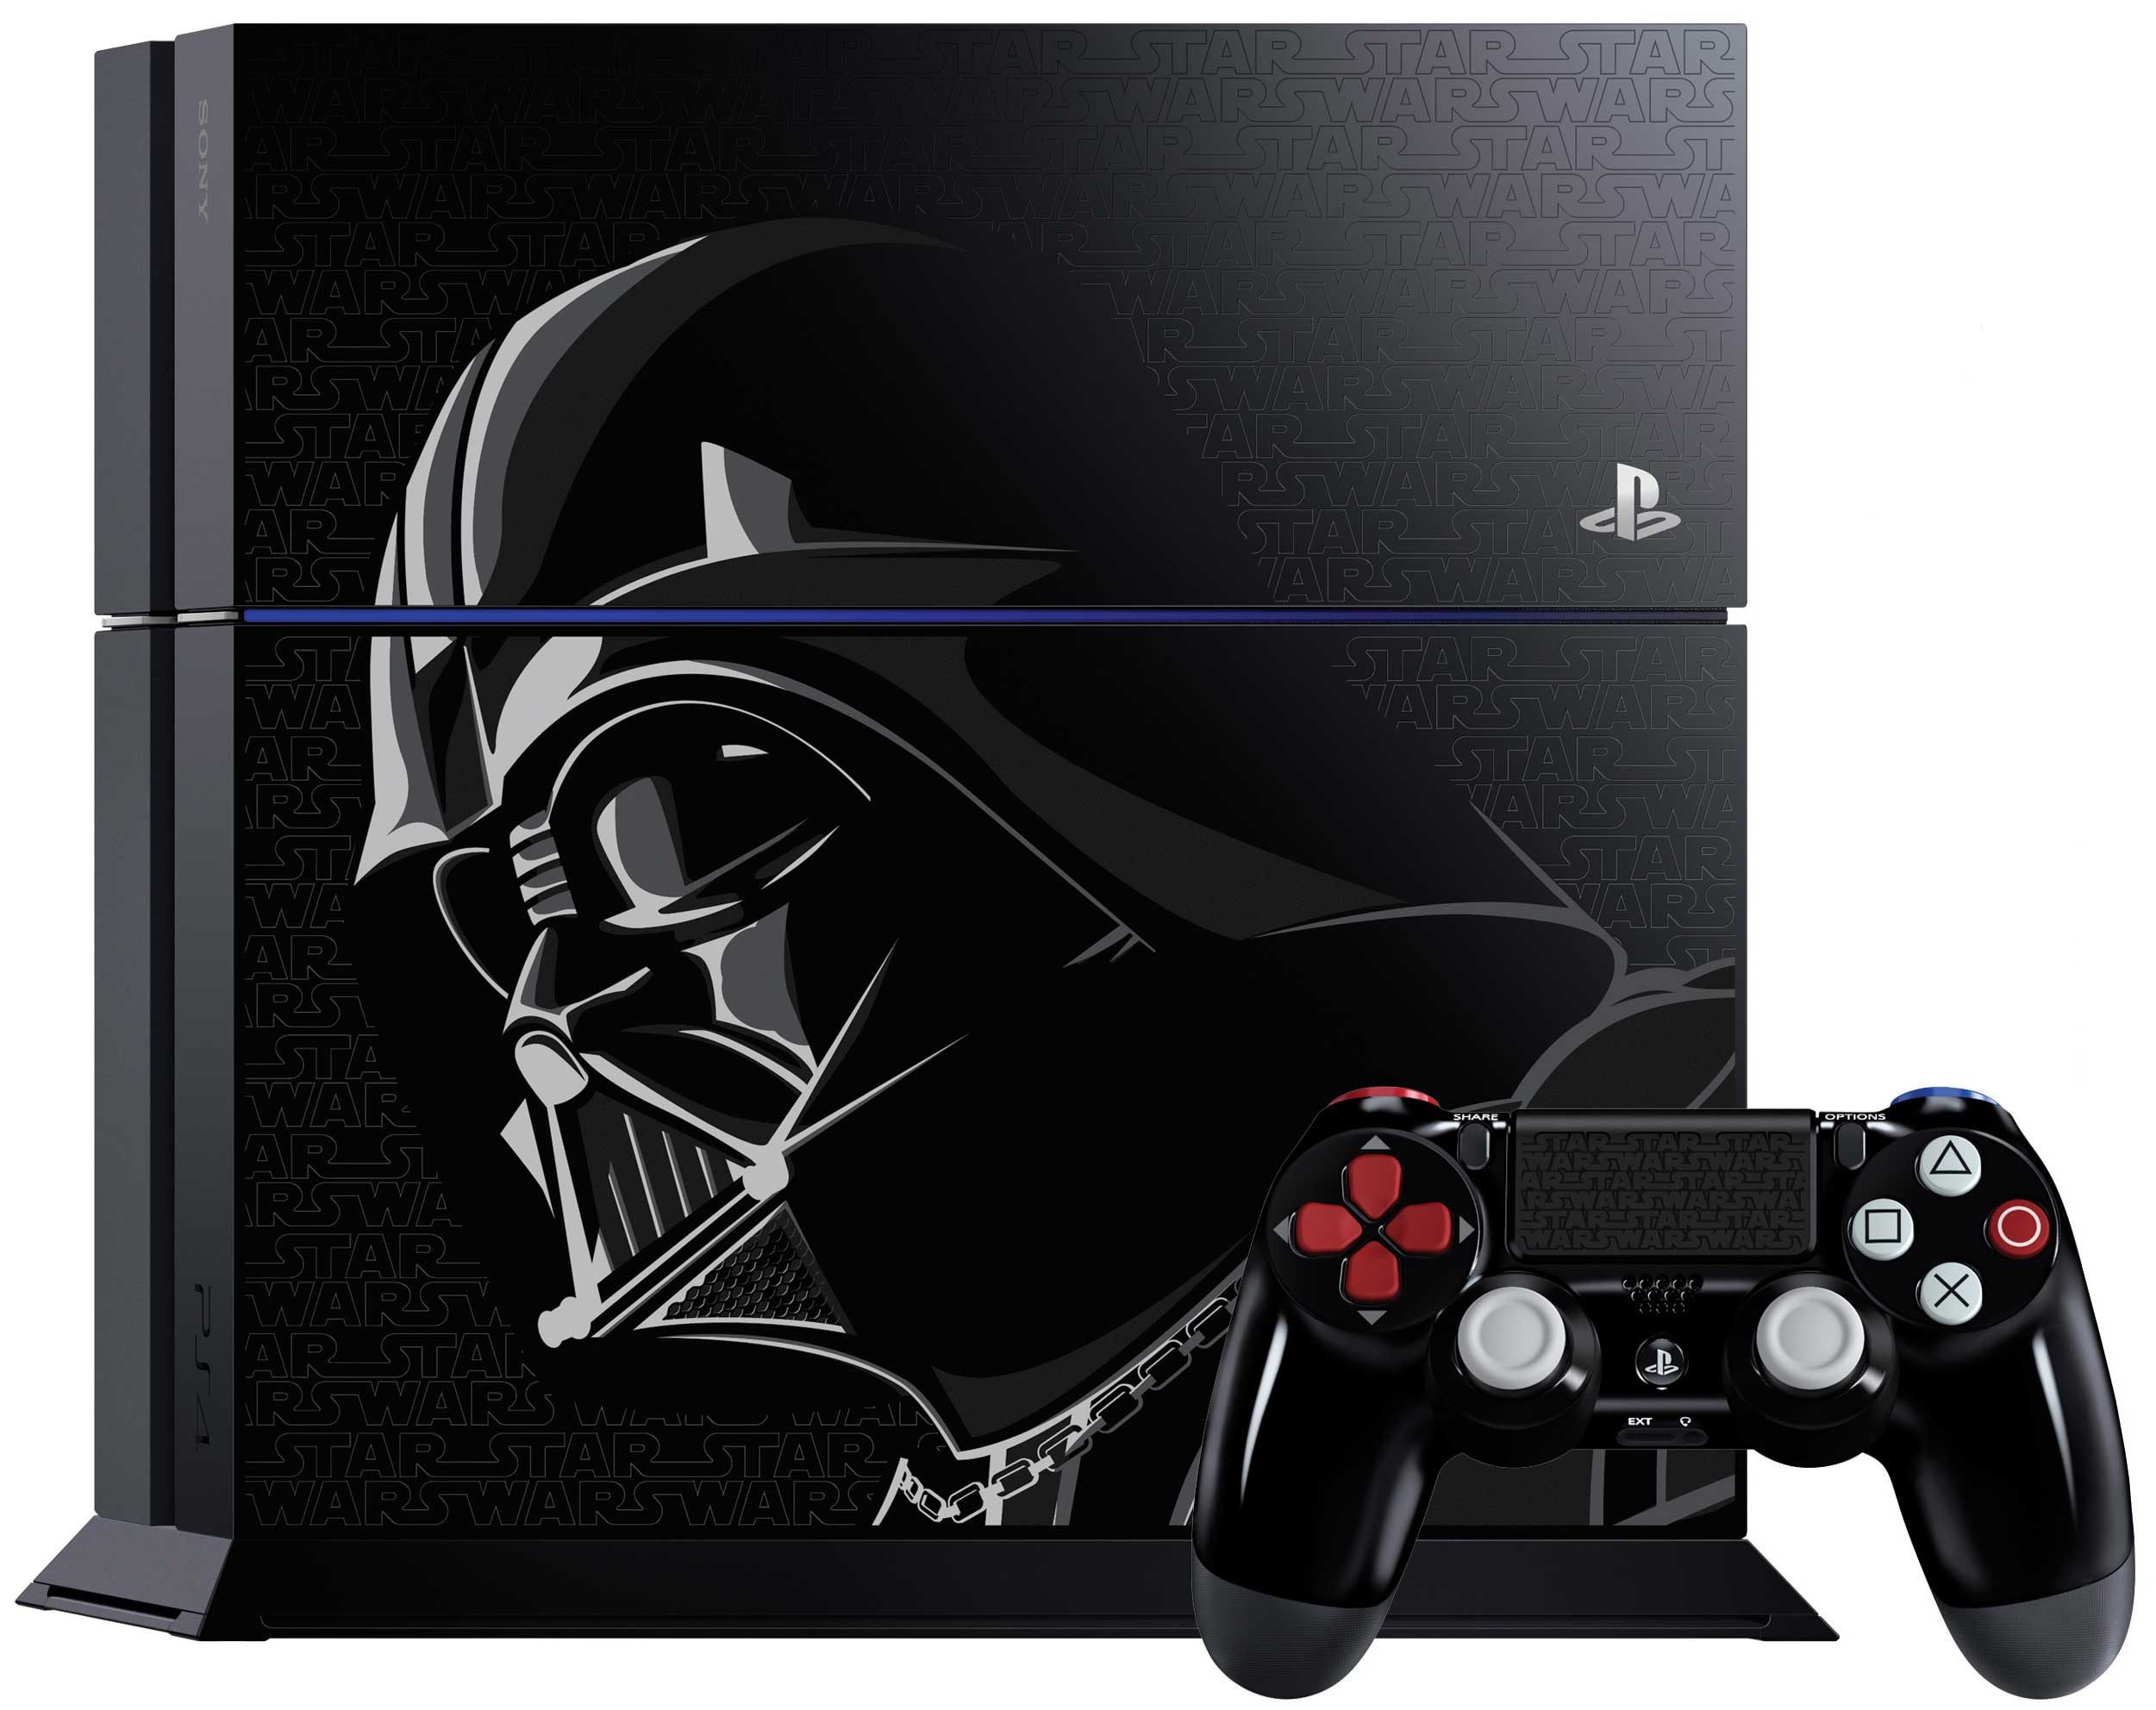 star wars battlefront console bundle includes super sexy. Black Bedroom Furniture Sets. Home Design Ideas